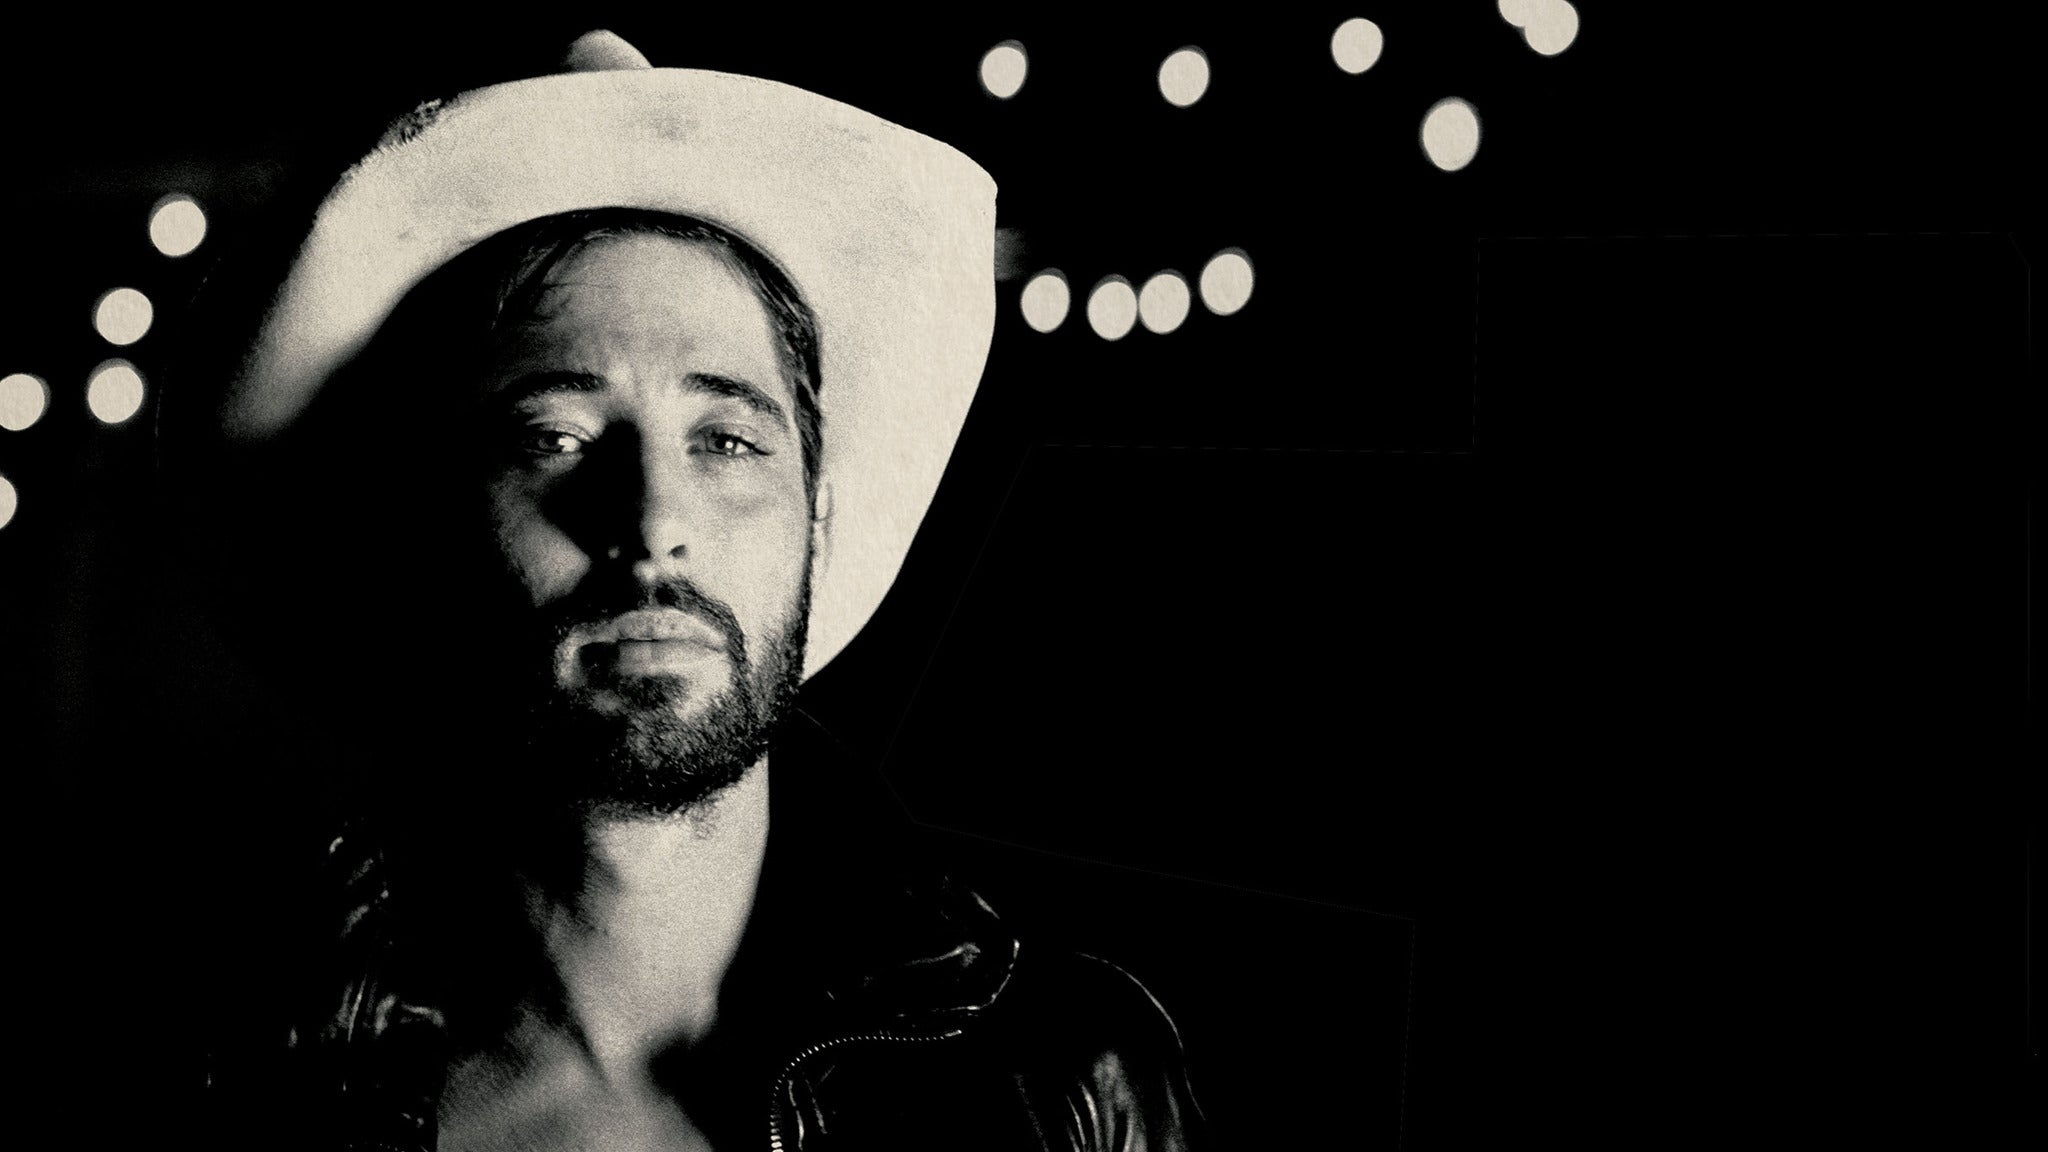 Ryan Bingham at Orpheum Theatre - Wichita KS